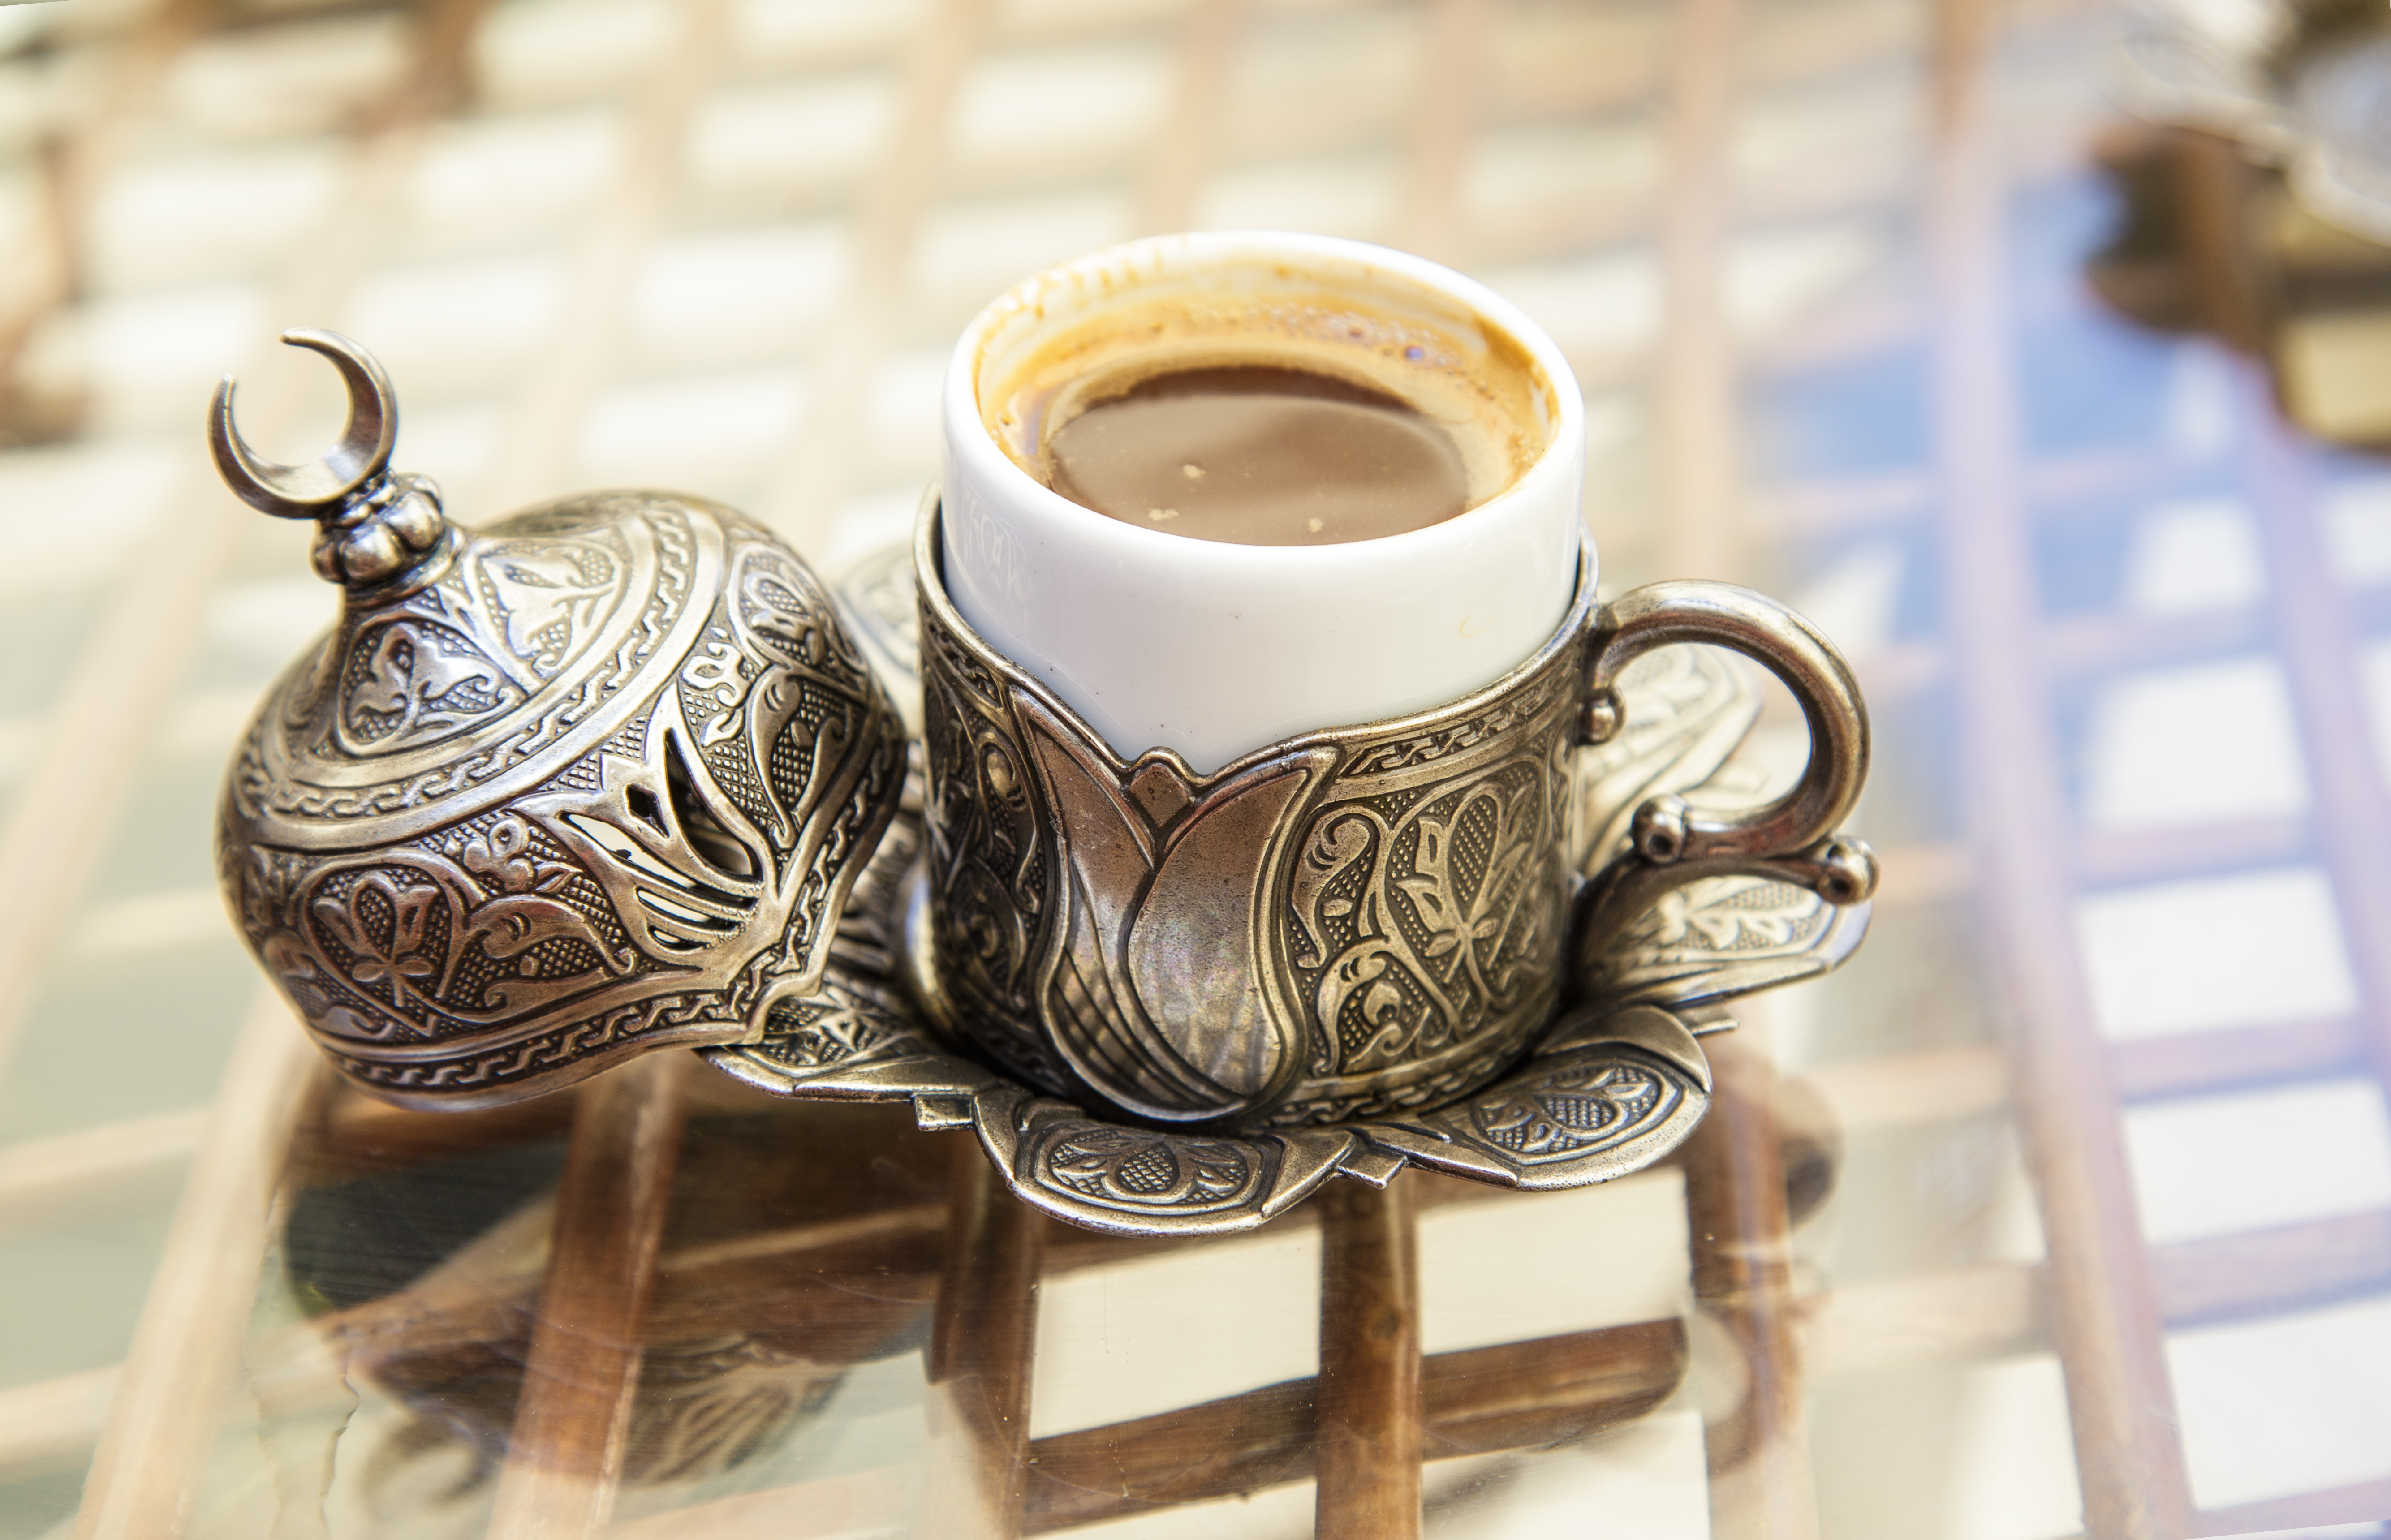 Turkish Cup For Coffee Hd Wallpaper